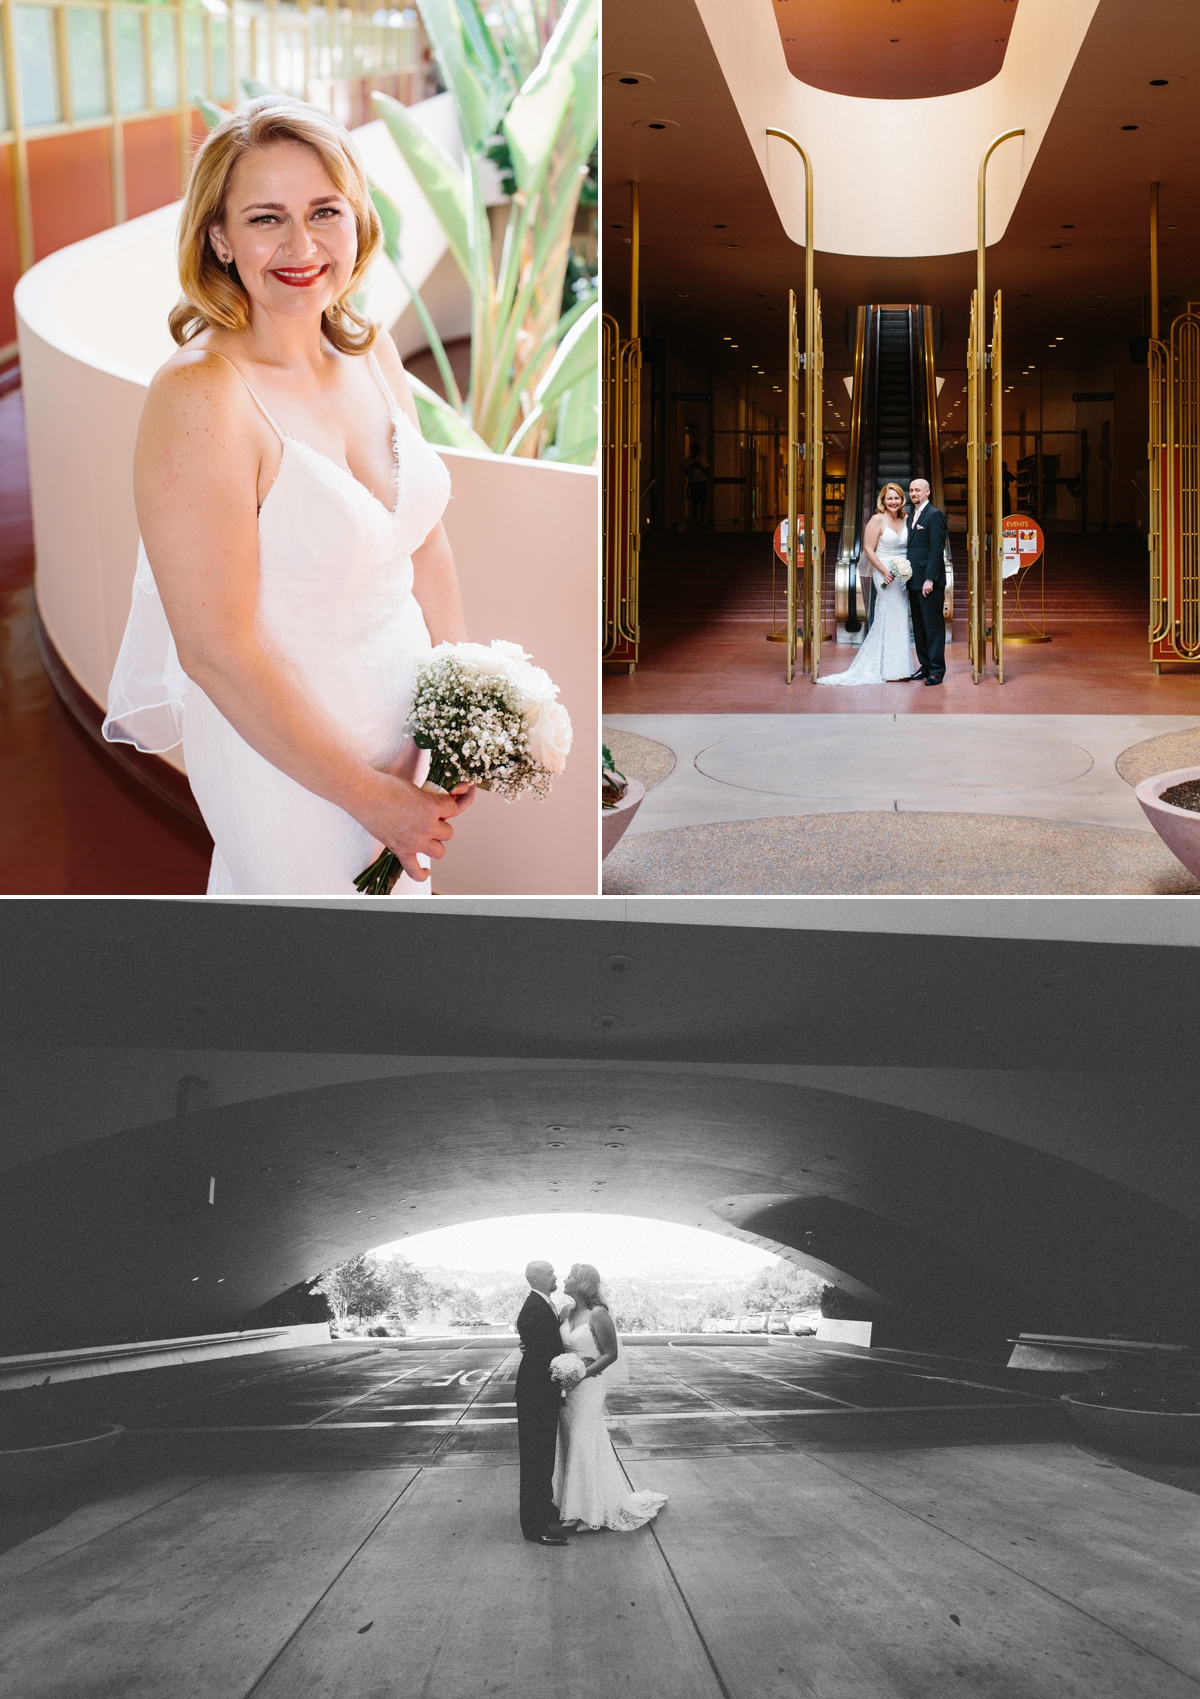 The rounded arch was the perfect frame for Laura and Nick as they were exiting the Marin Civic Center.